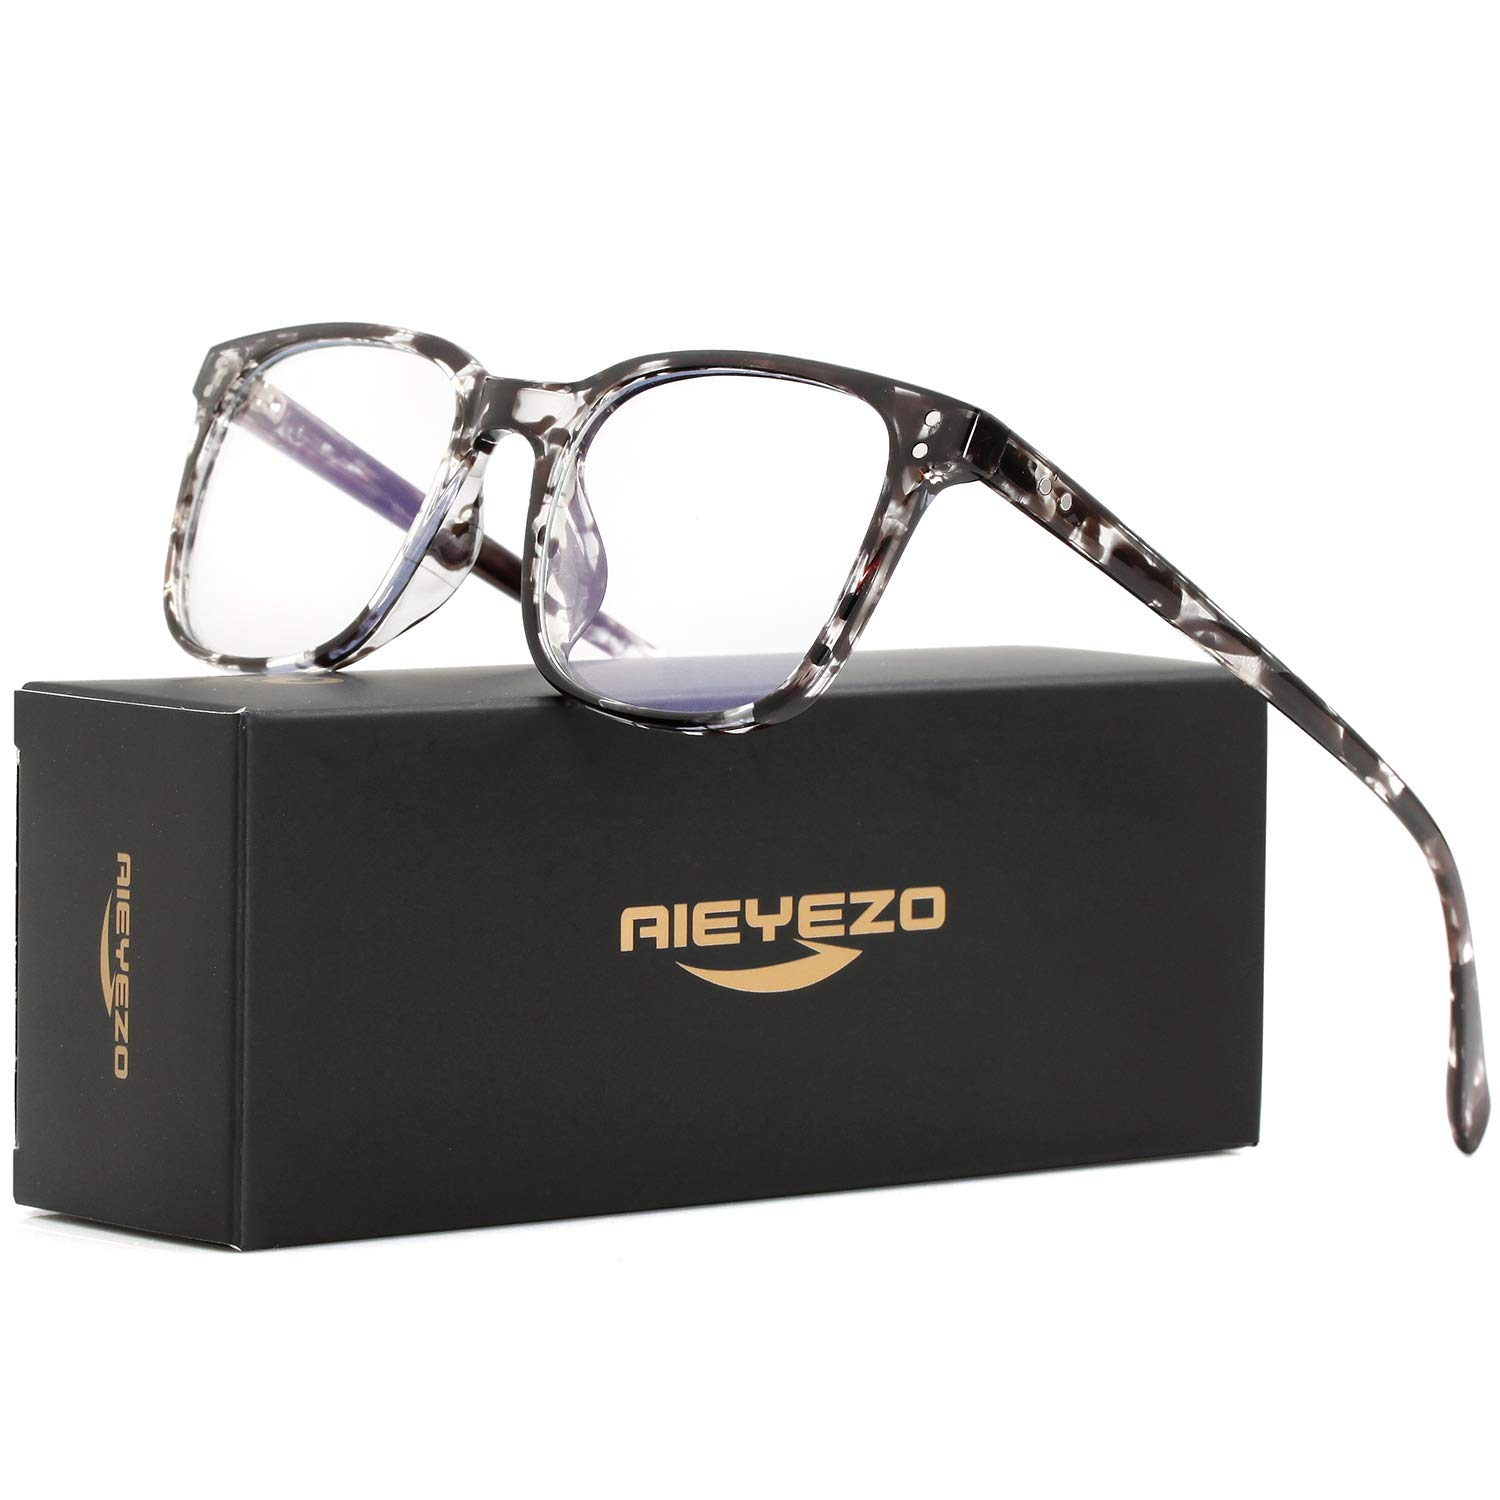 Blue Light Blocking Glasses for Men Women's Square Eyeglasses Unbreakable TR90 Frames with 100% Anti-Blue Light Lens (Ink Frame) by AIEYEZO